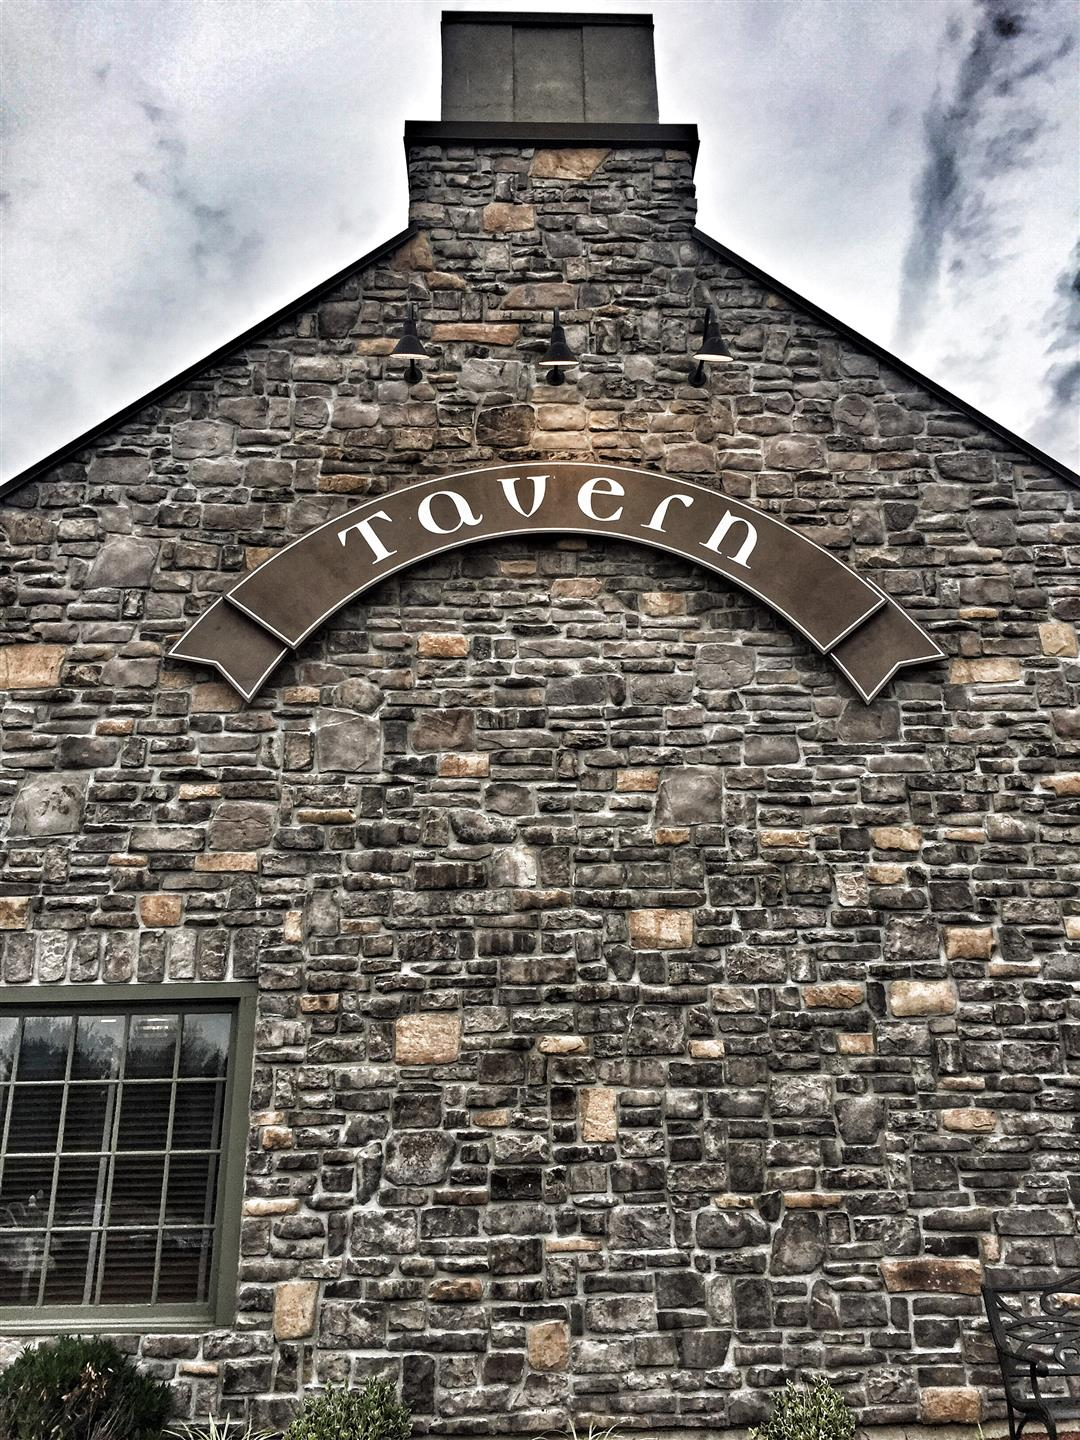 outside of Tavern building